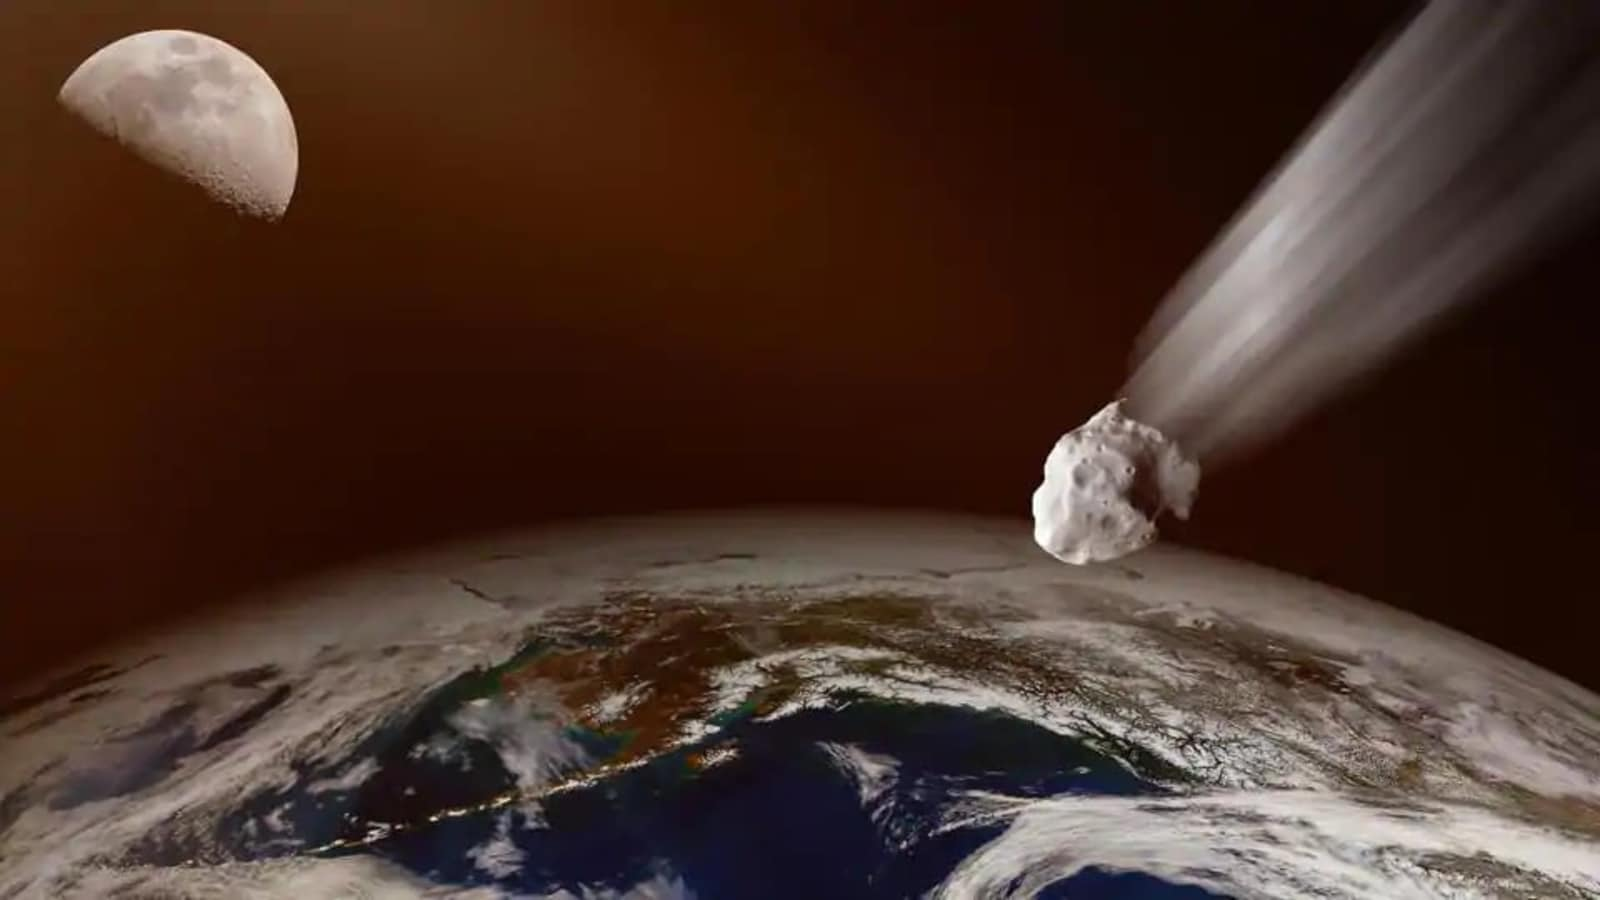 What is this giant asteroid?